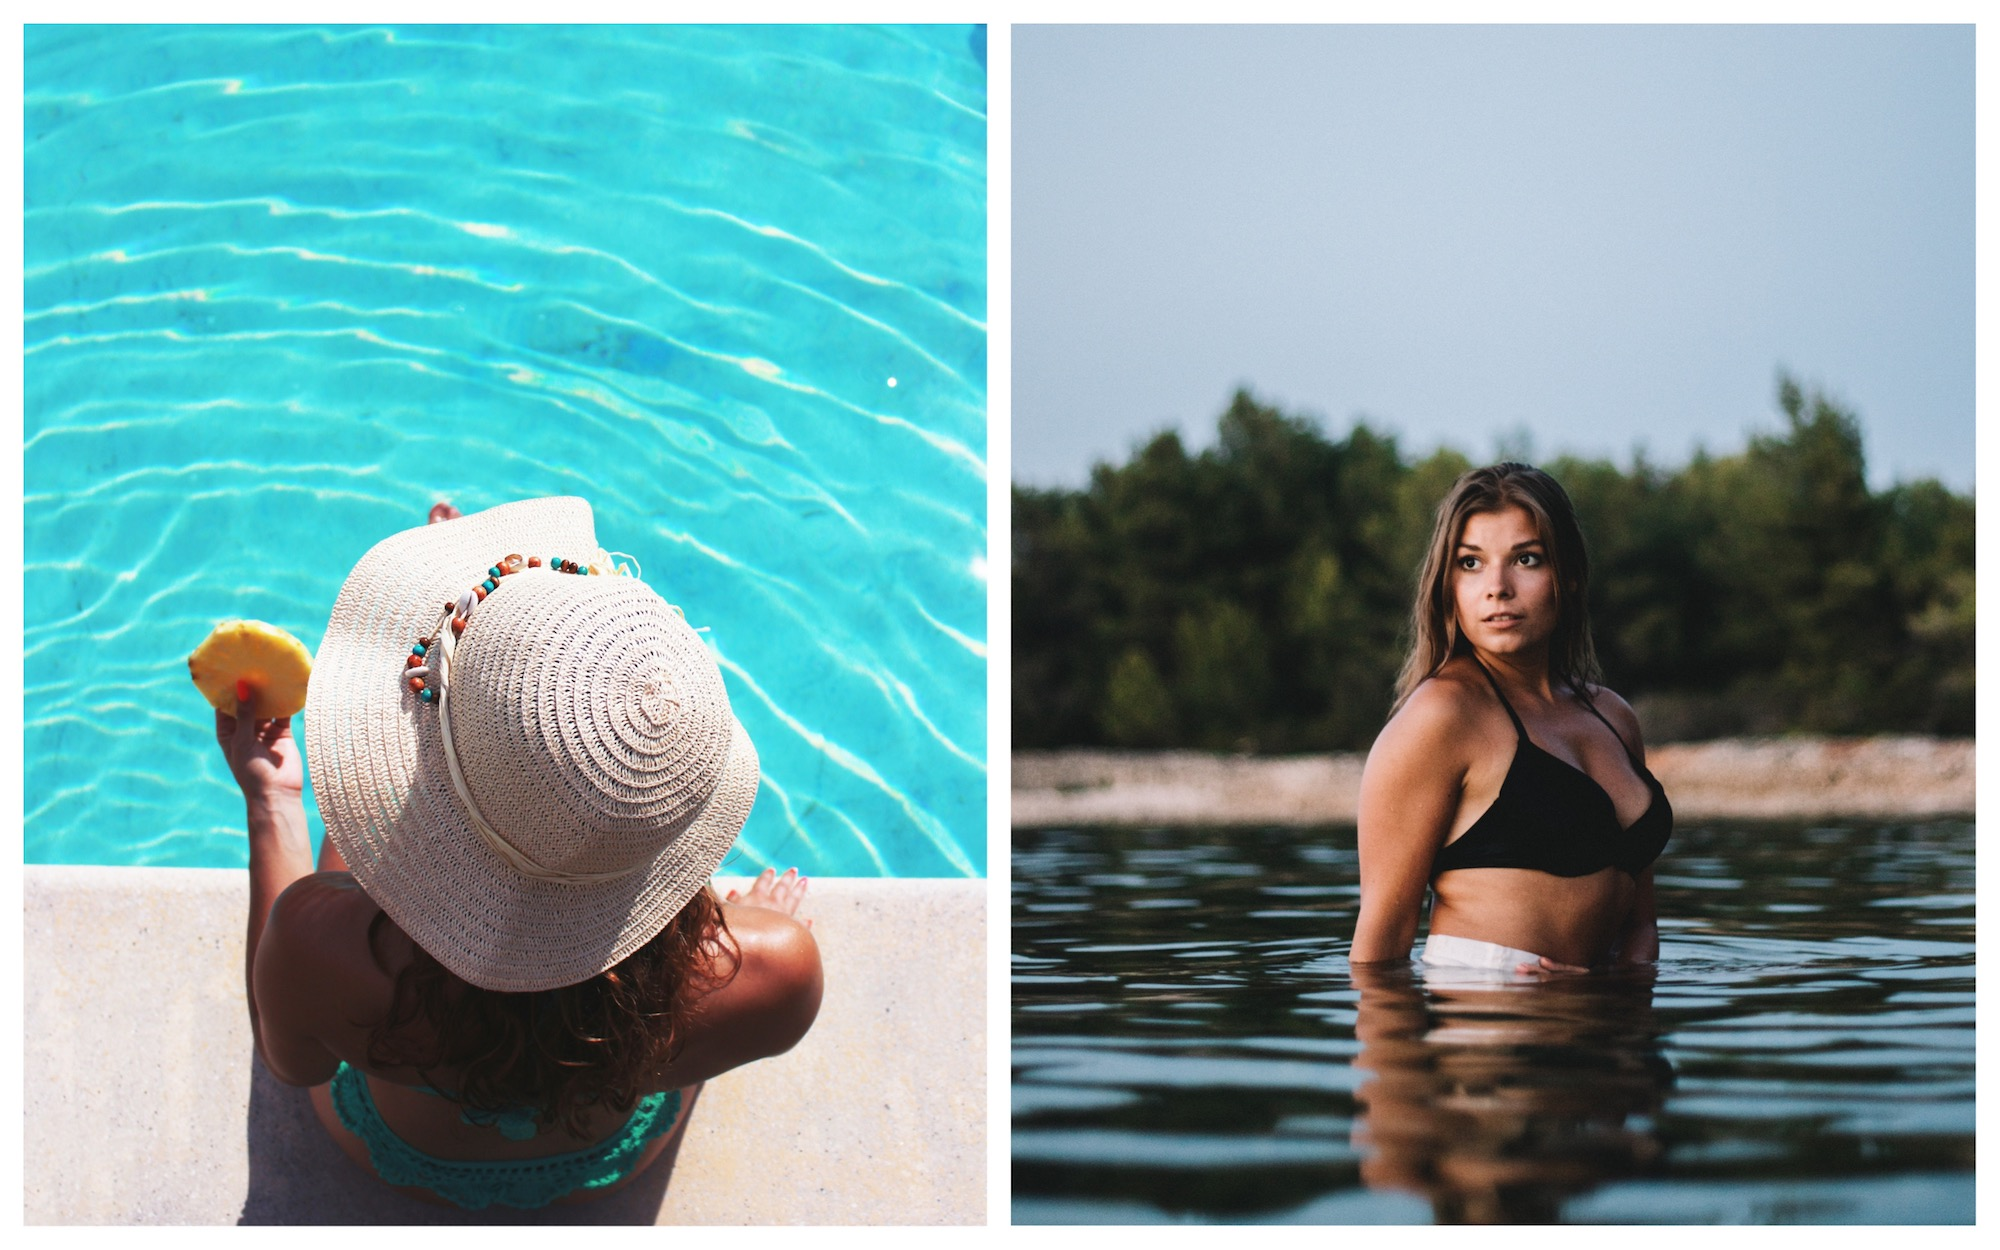 HiP Paris Blog tells you about one writer's experience bikini shopping in Paris including for summer hats like this white one that's perfect for the pool (left) as well as swimsuits for larger women like Ashley Graham (right).